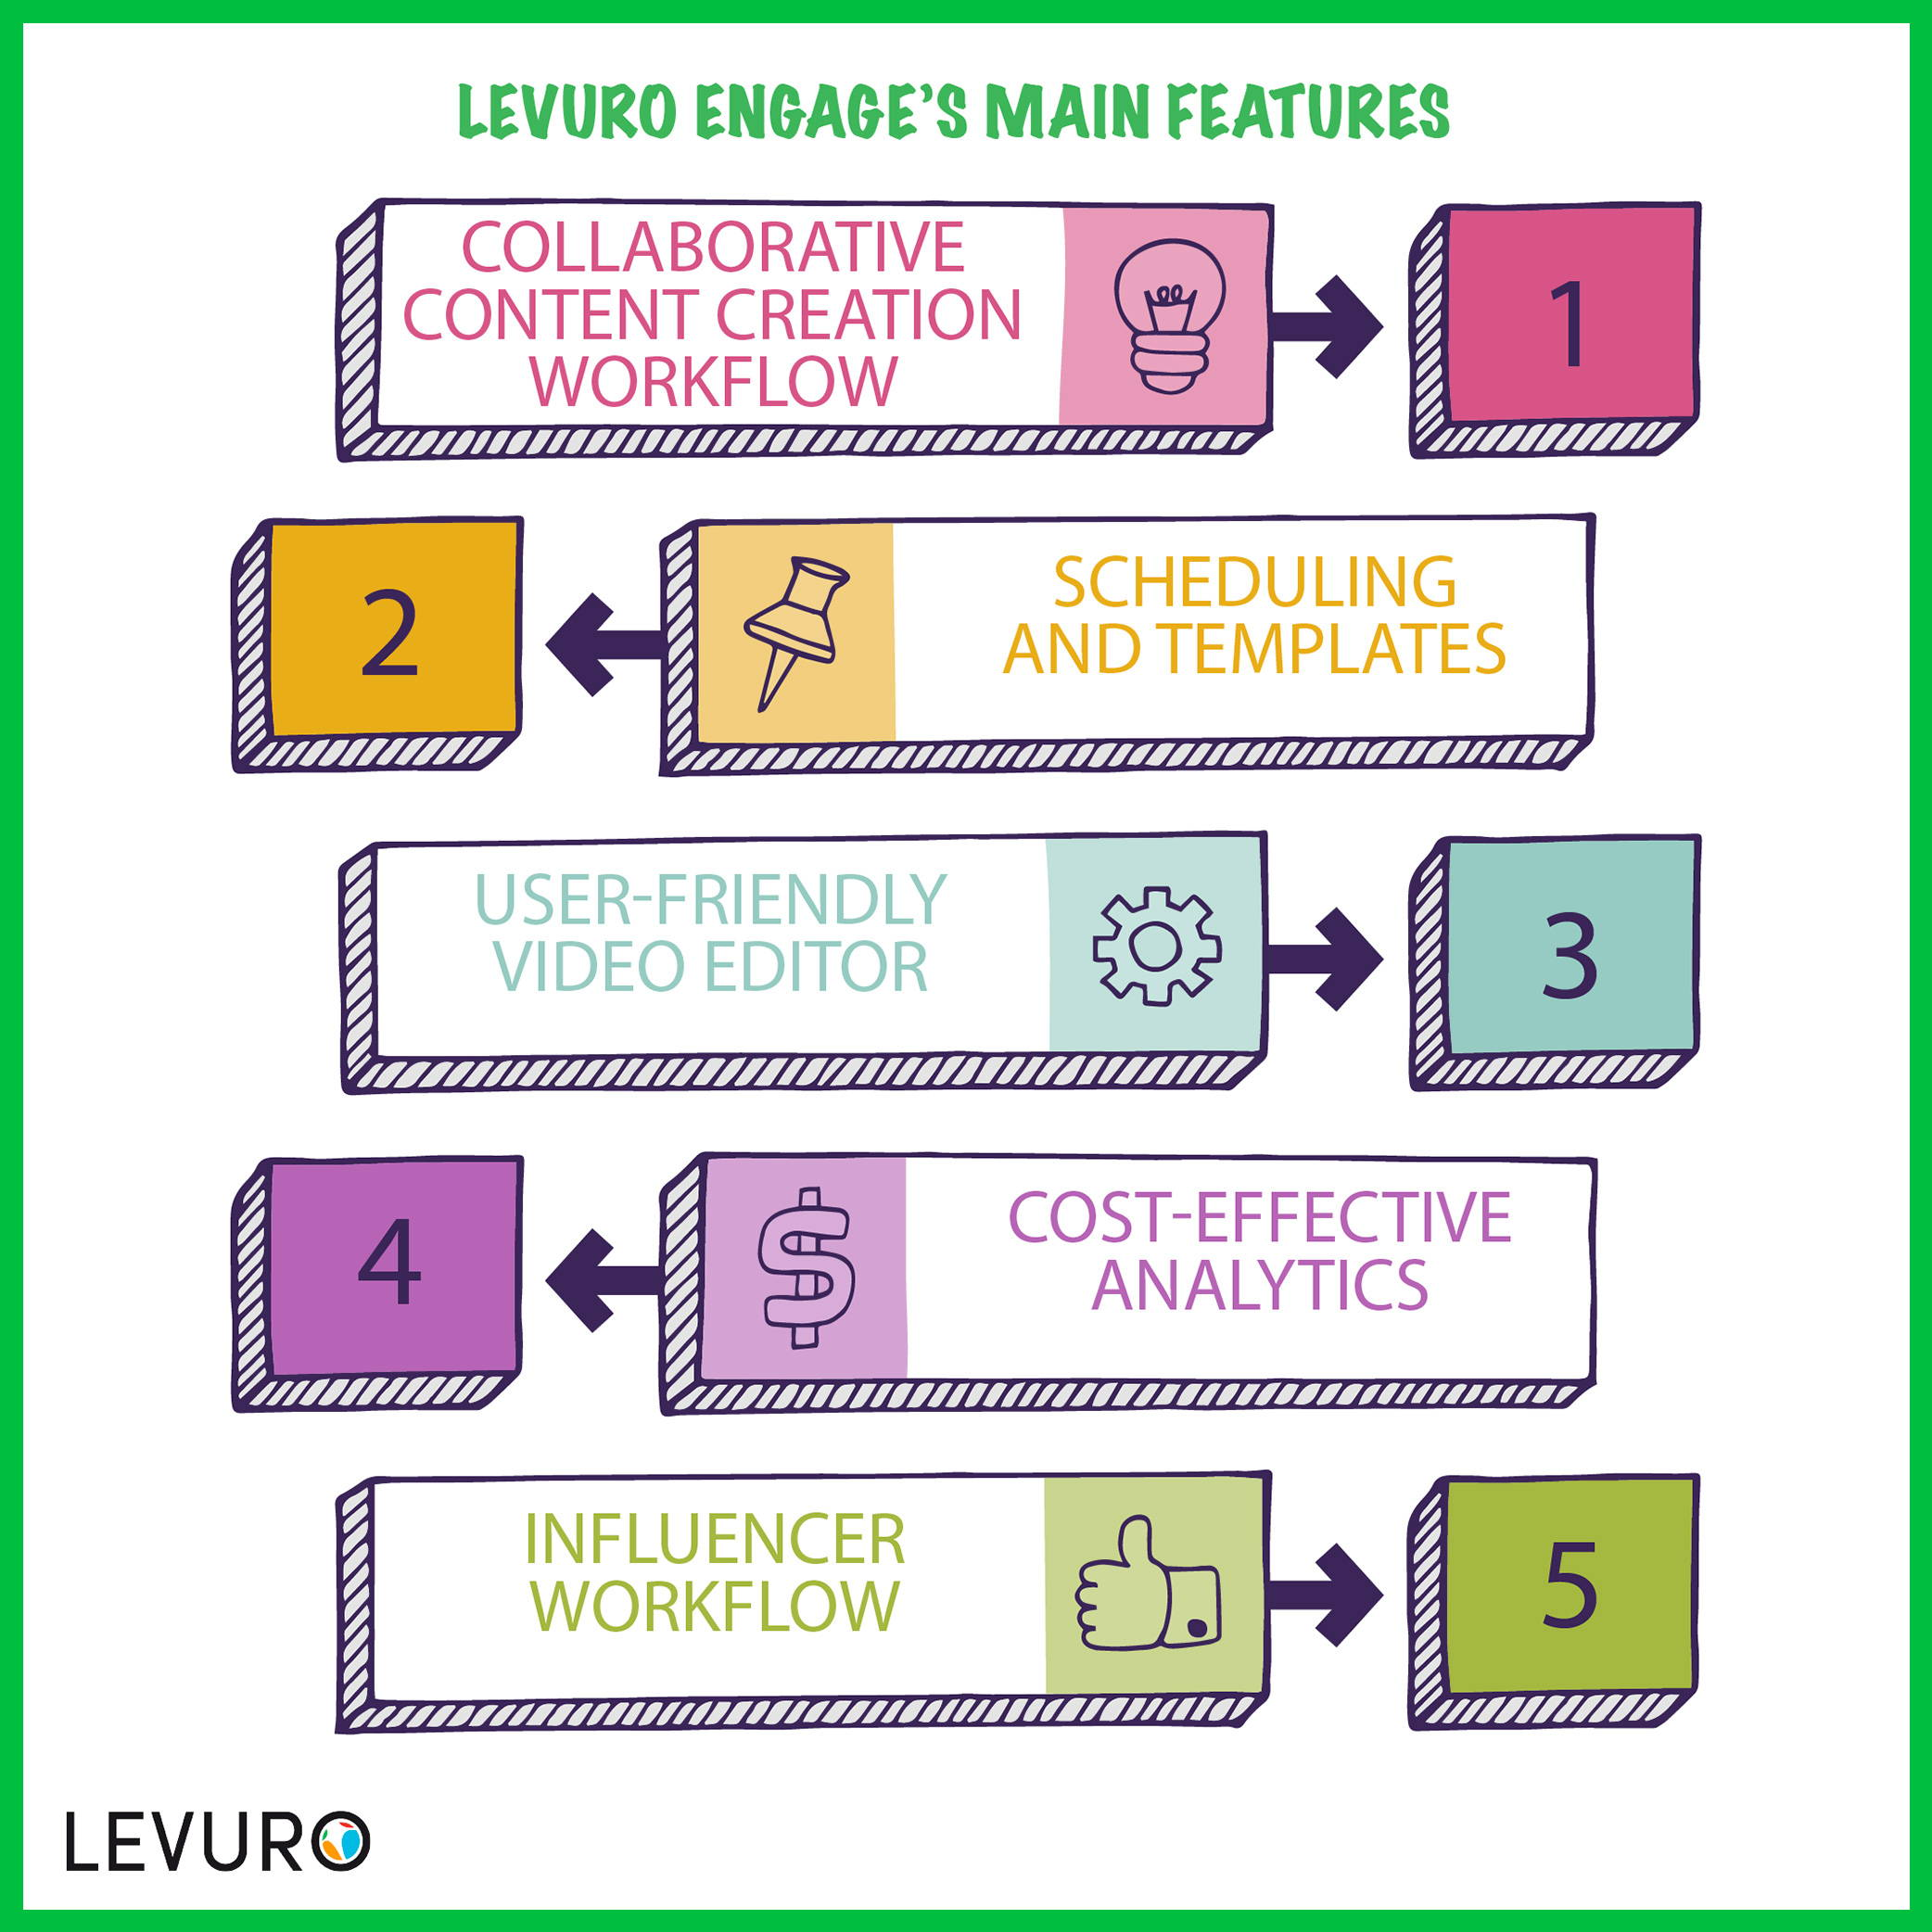 social media content marketing tool - levuro engage